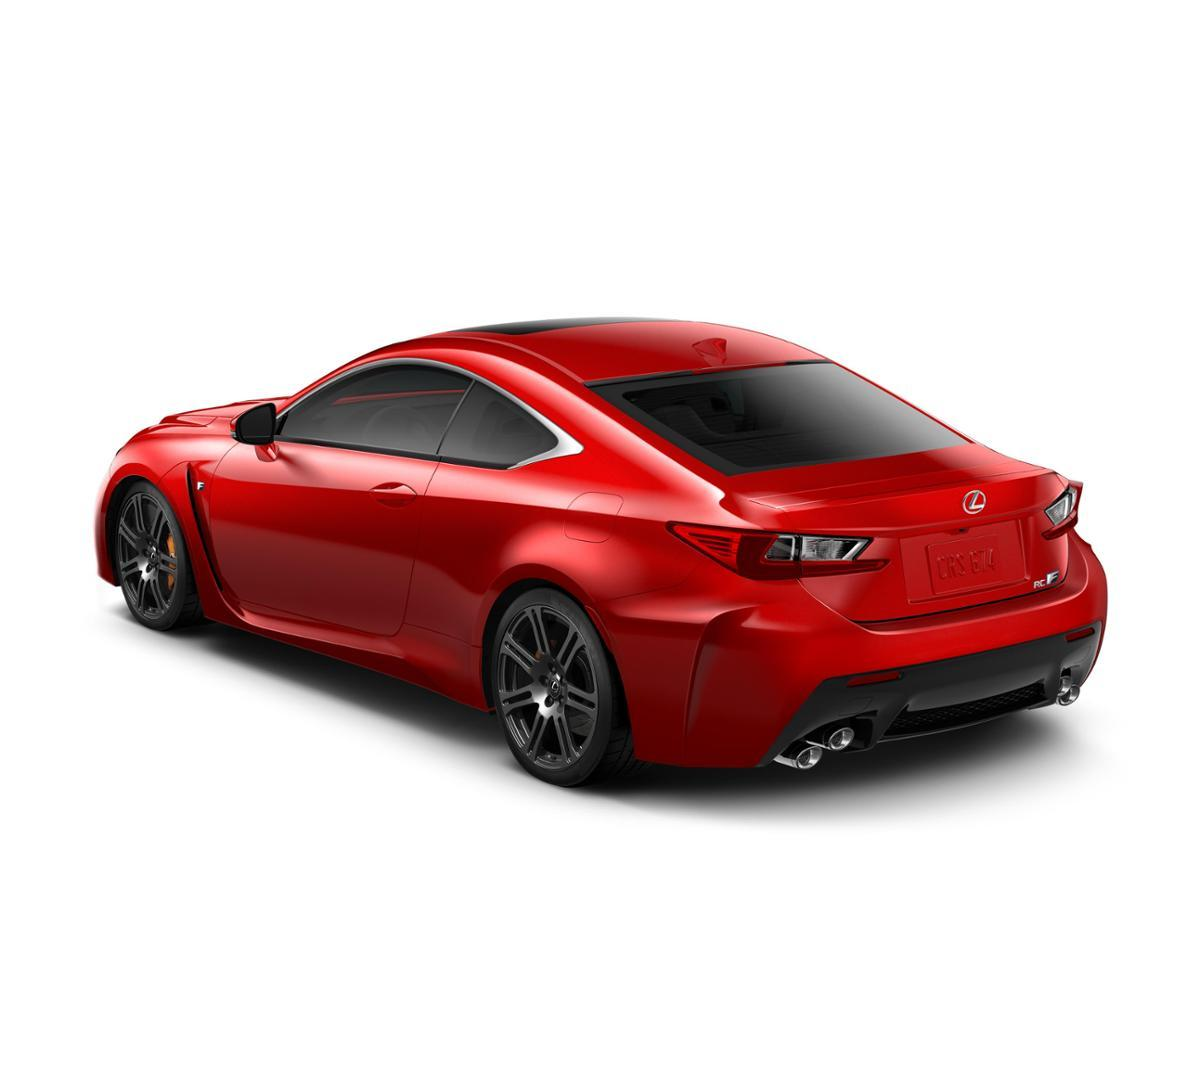 2017 Lexus Rc Exterior: Oakland Infrared 2017 Lexus RC F Car For Sale